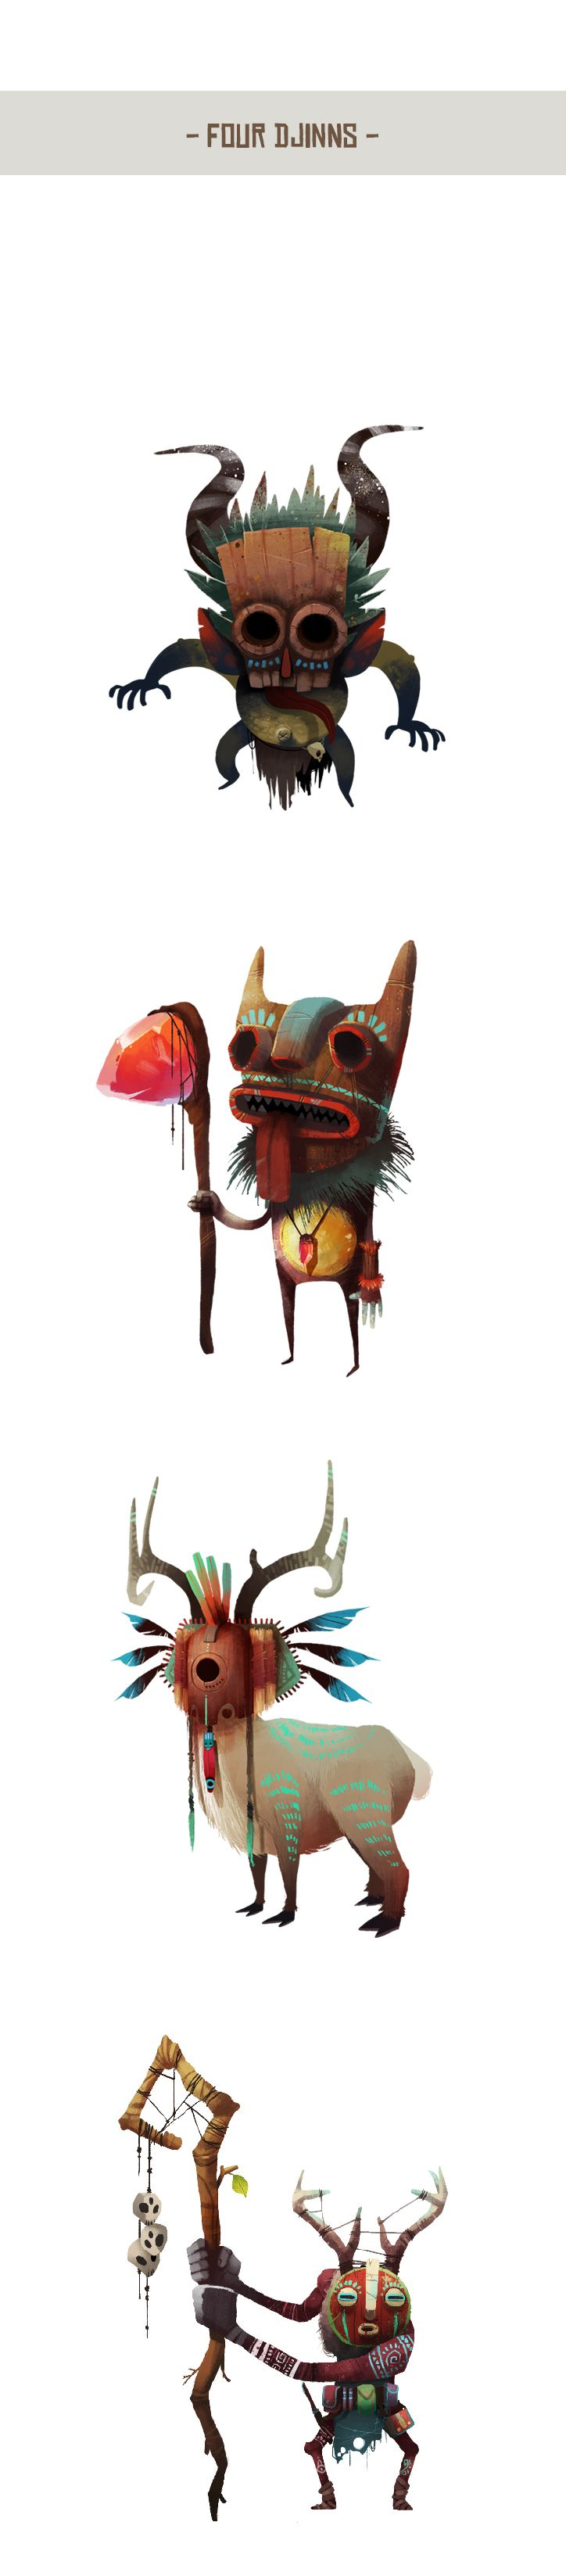 https://www.behance.net/gallery/16812879/-Four-Djinns- tribal characters masks organic nature illustration